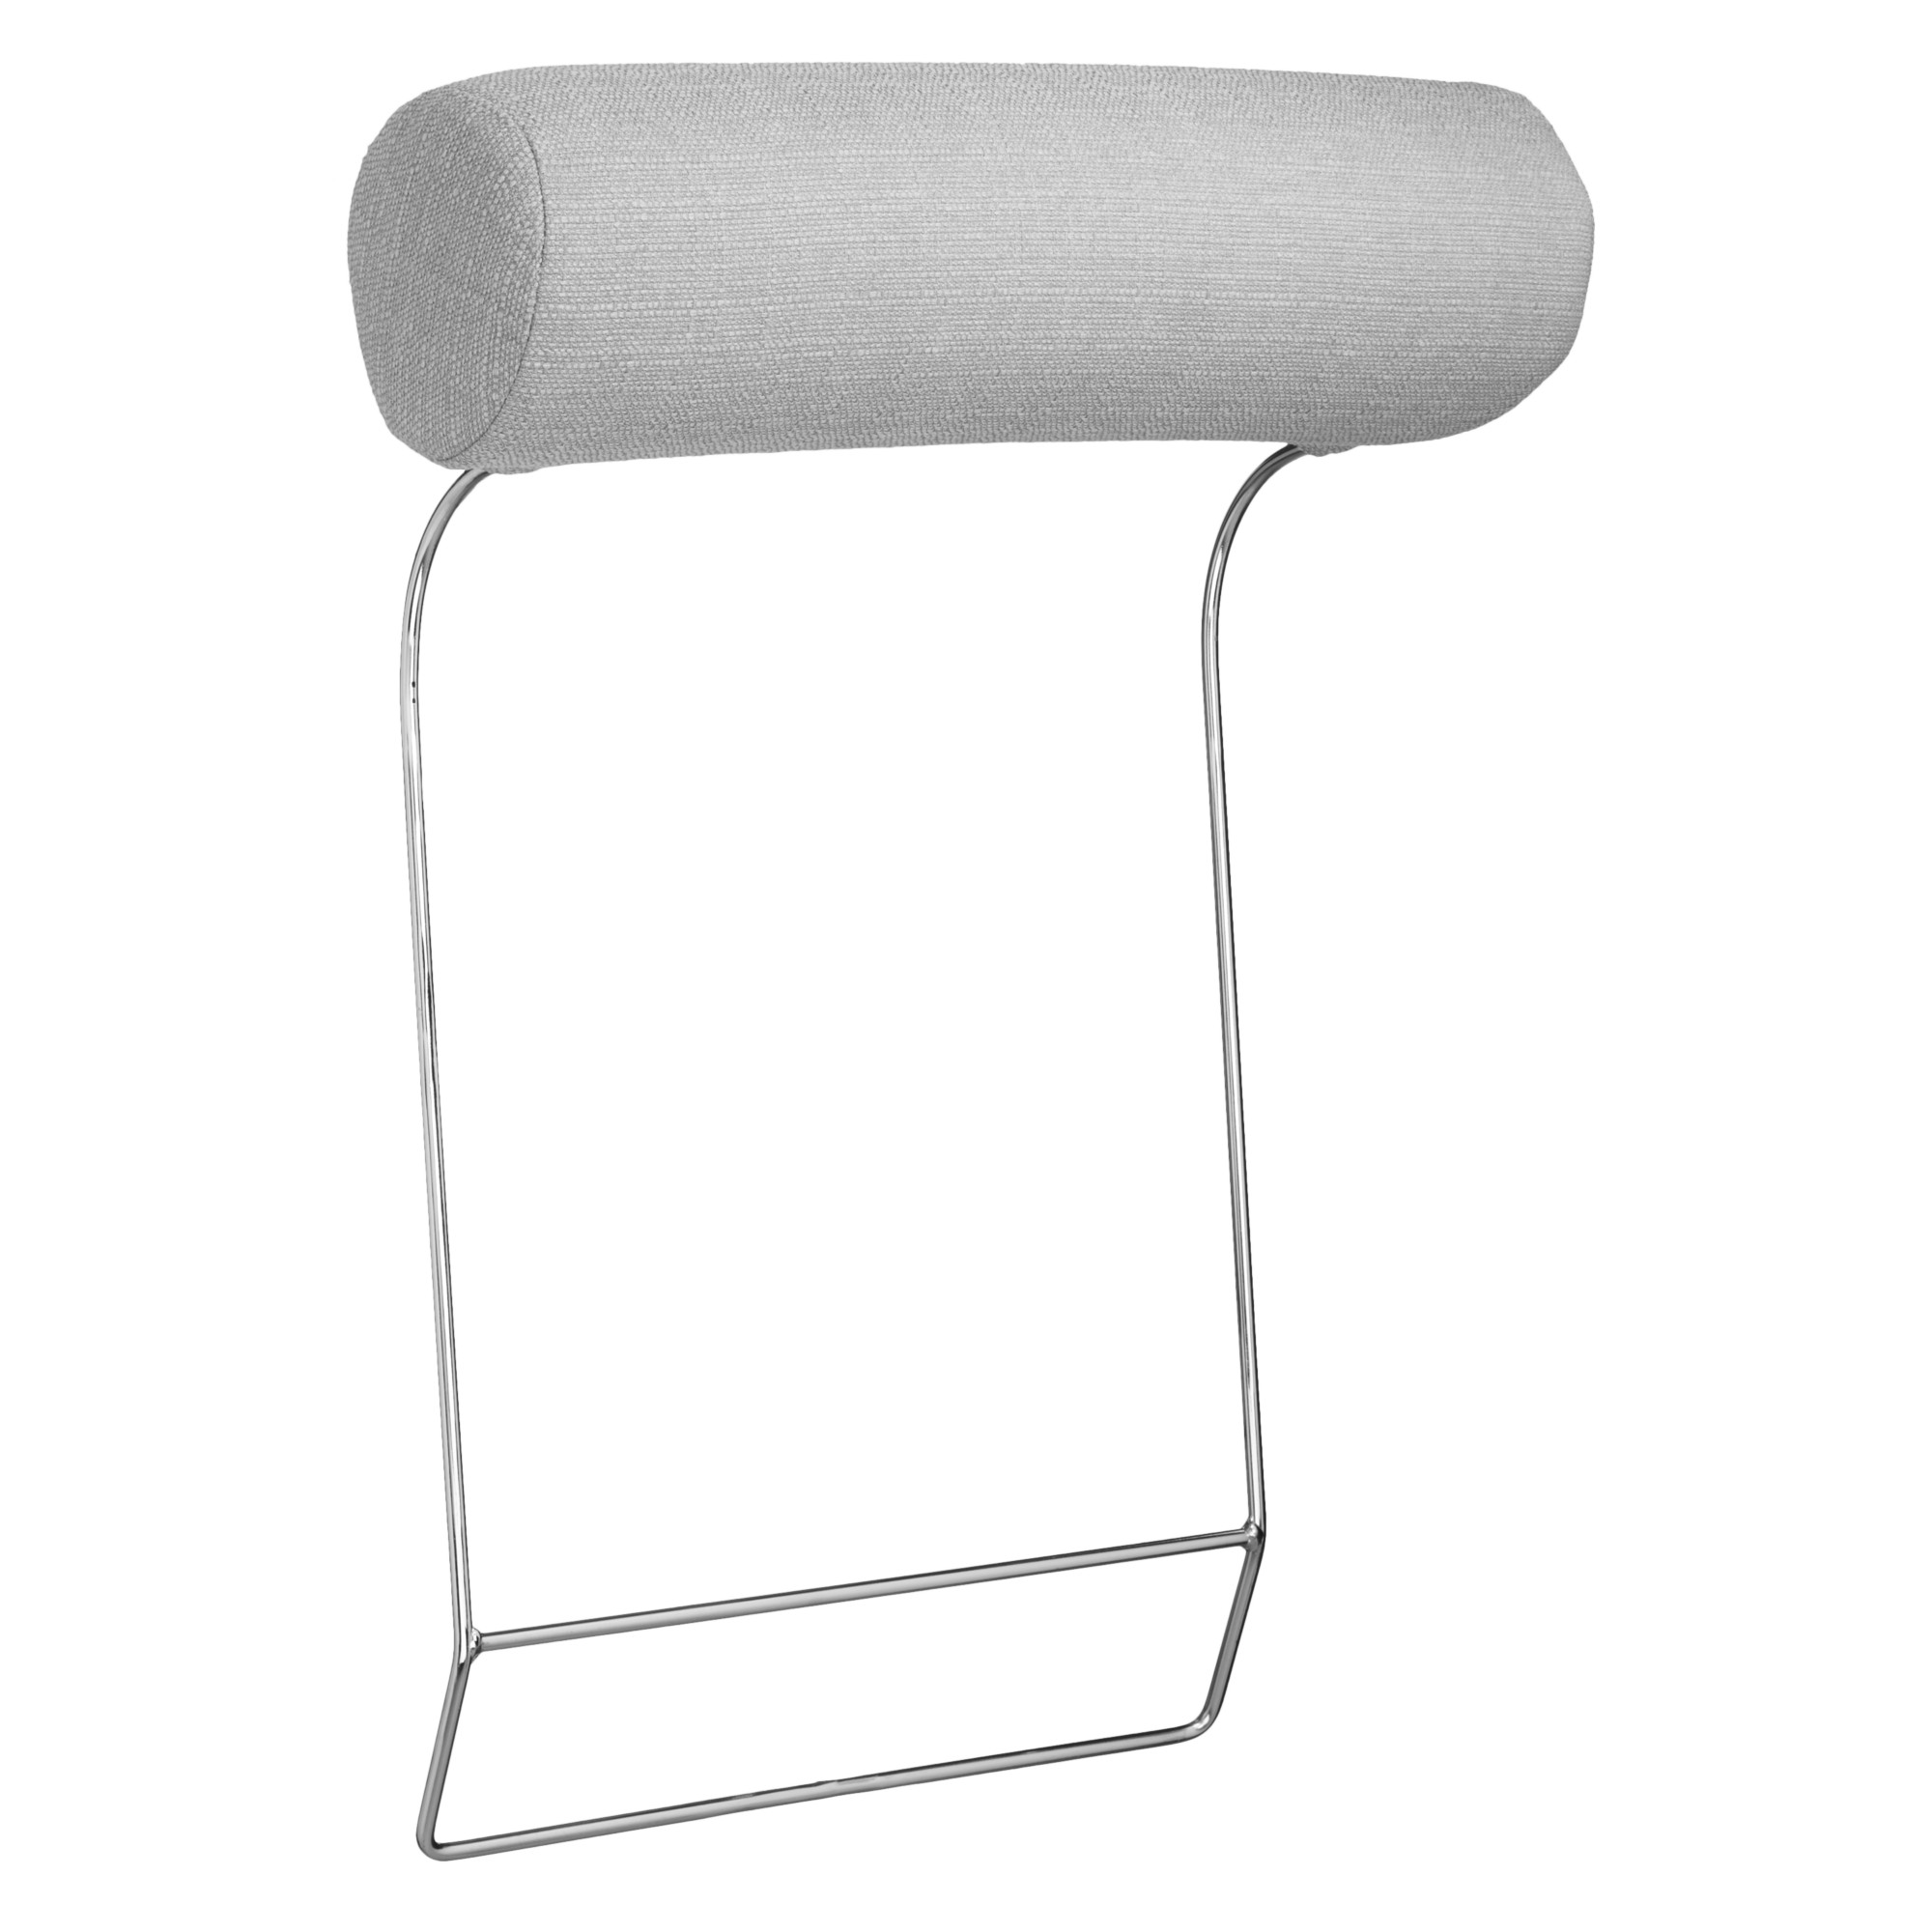 John Lewis Beaumont Headrest